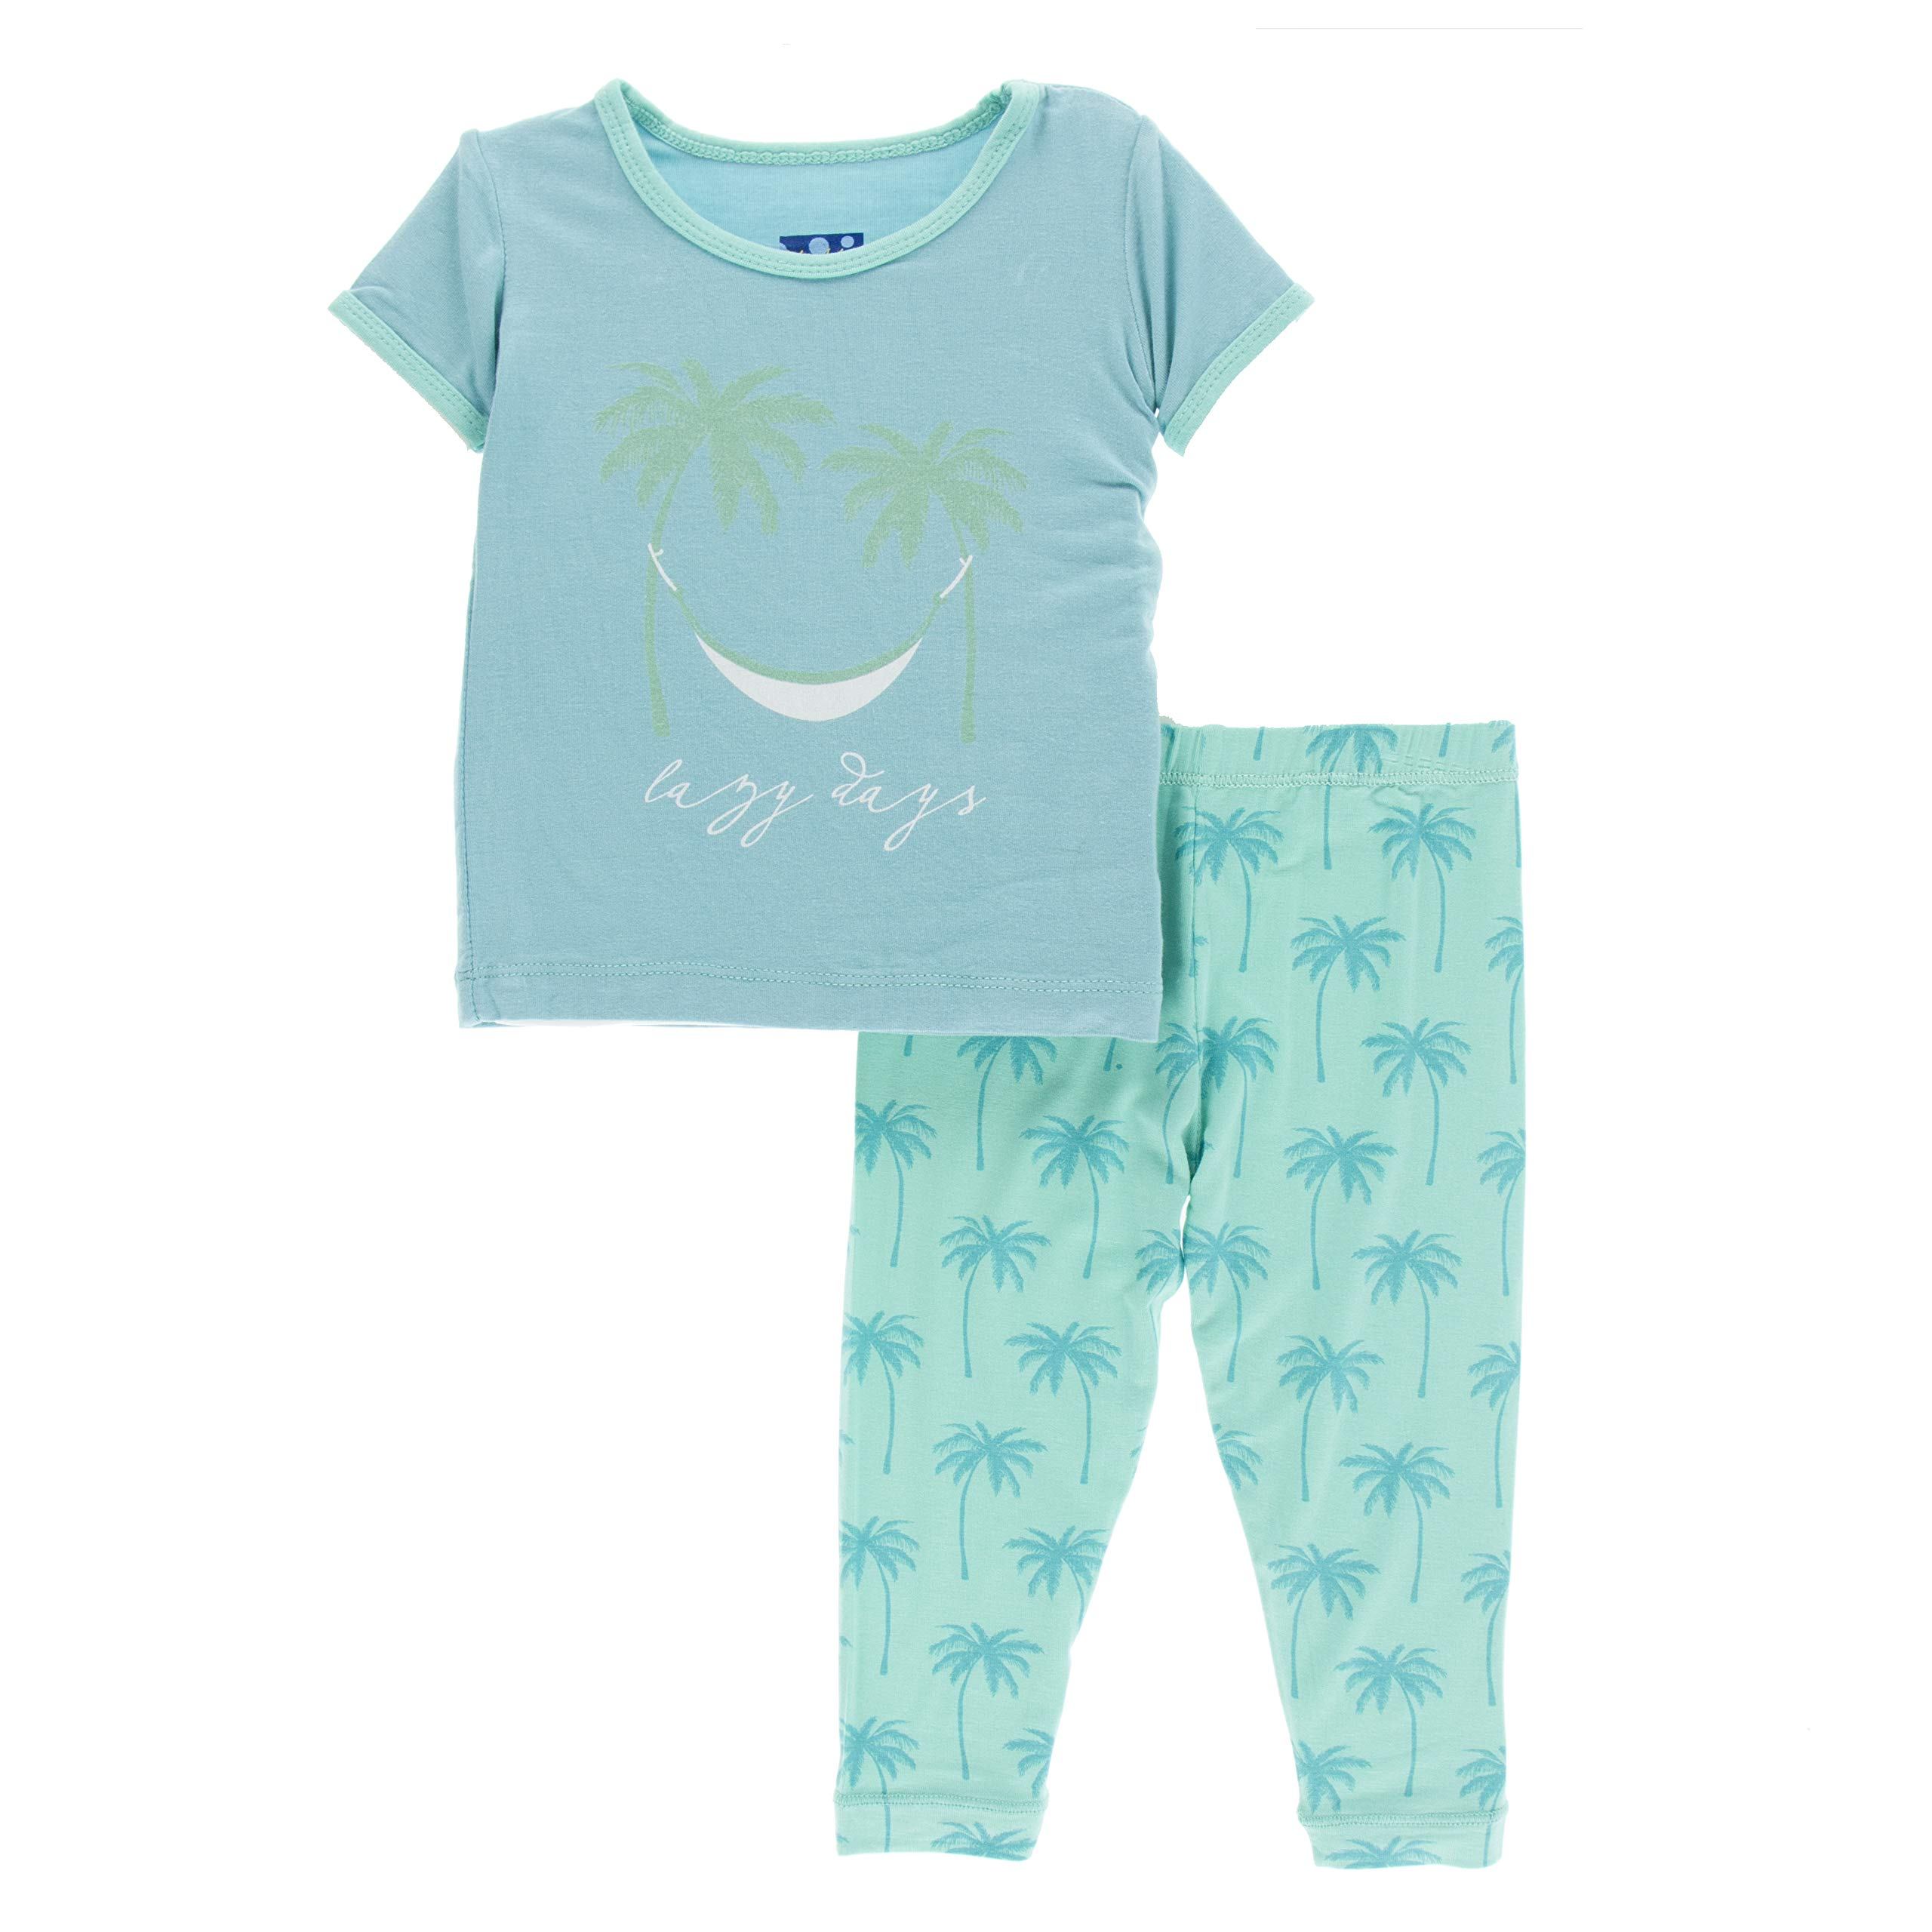 Kickee Pants Print Short Sleeve Pajama Set (Glass Palm Trees - 8 Years)